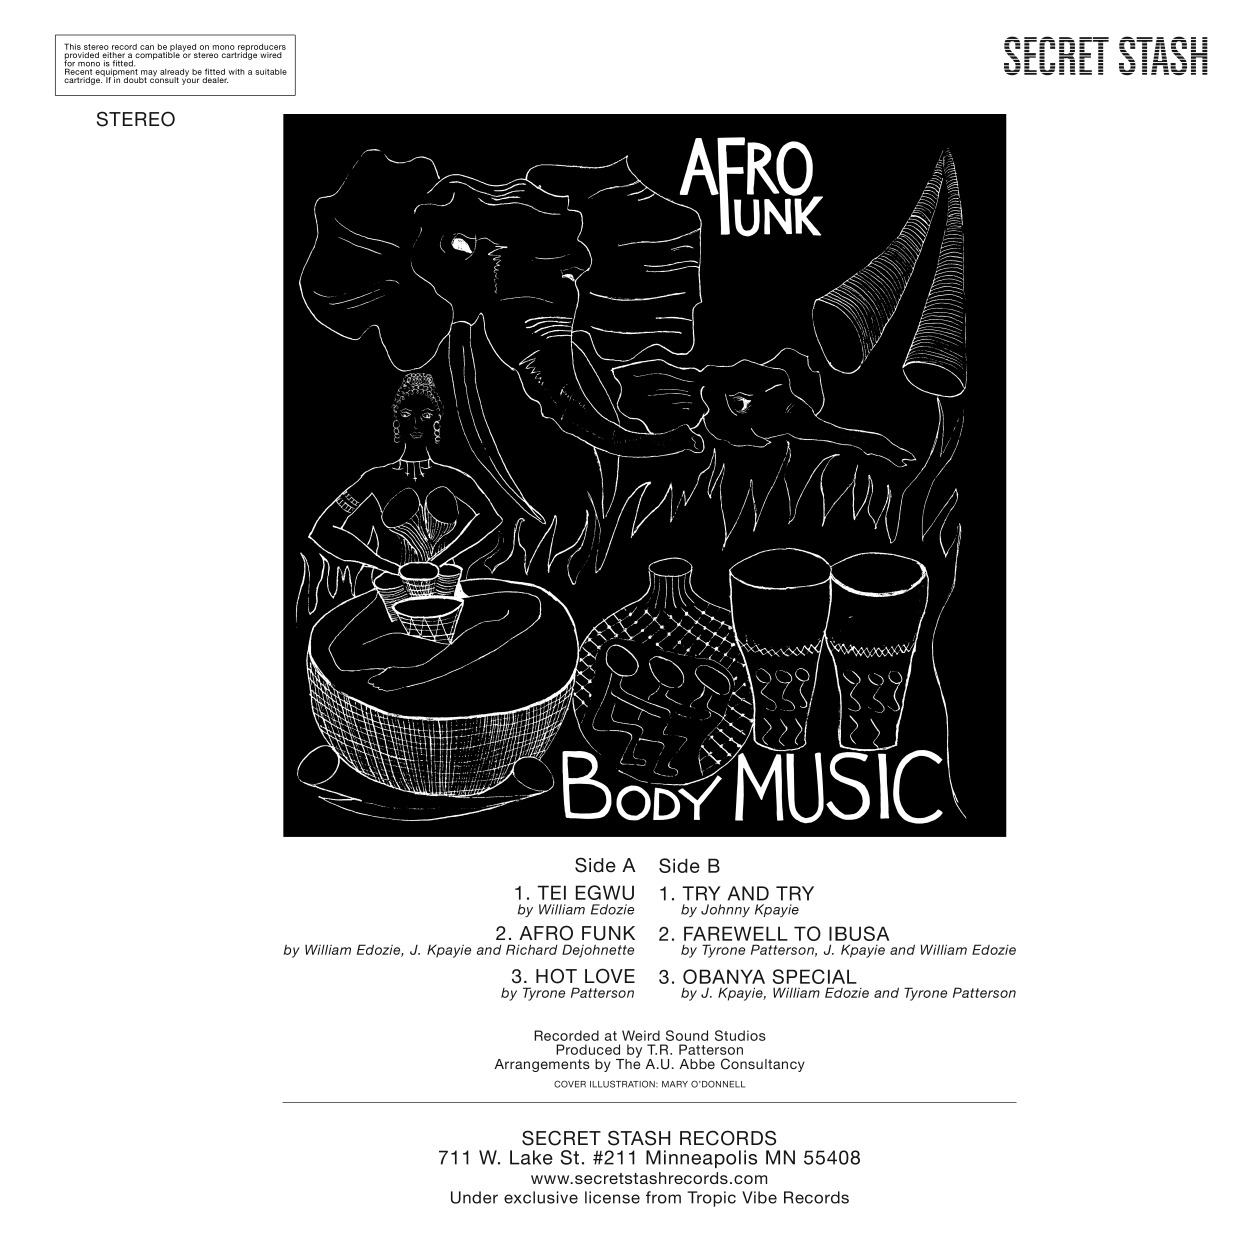 AFRO FUNK picture